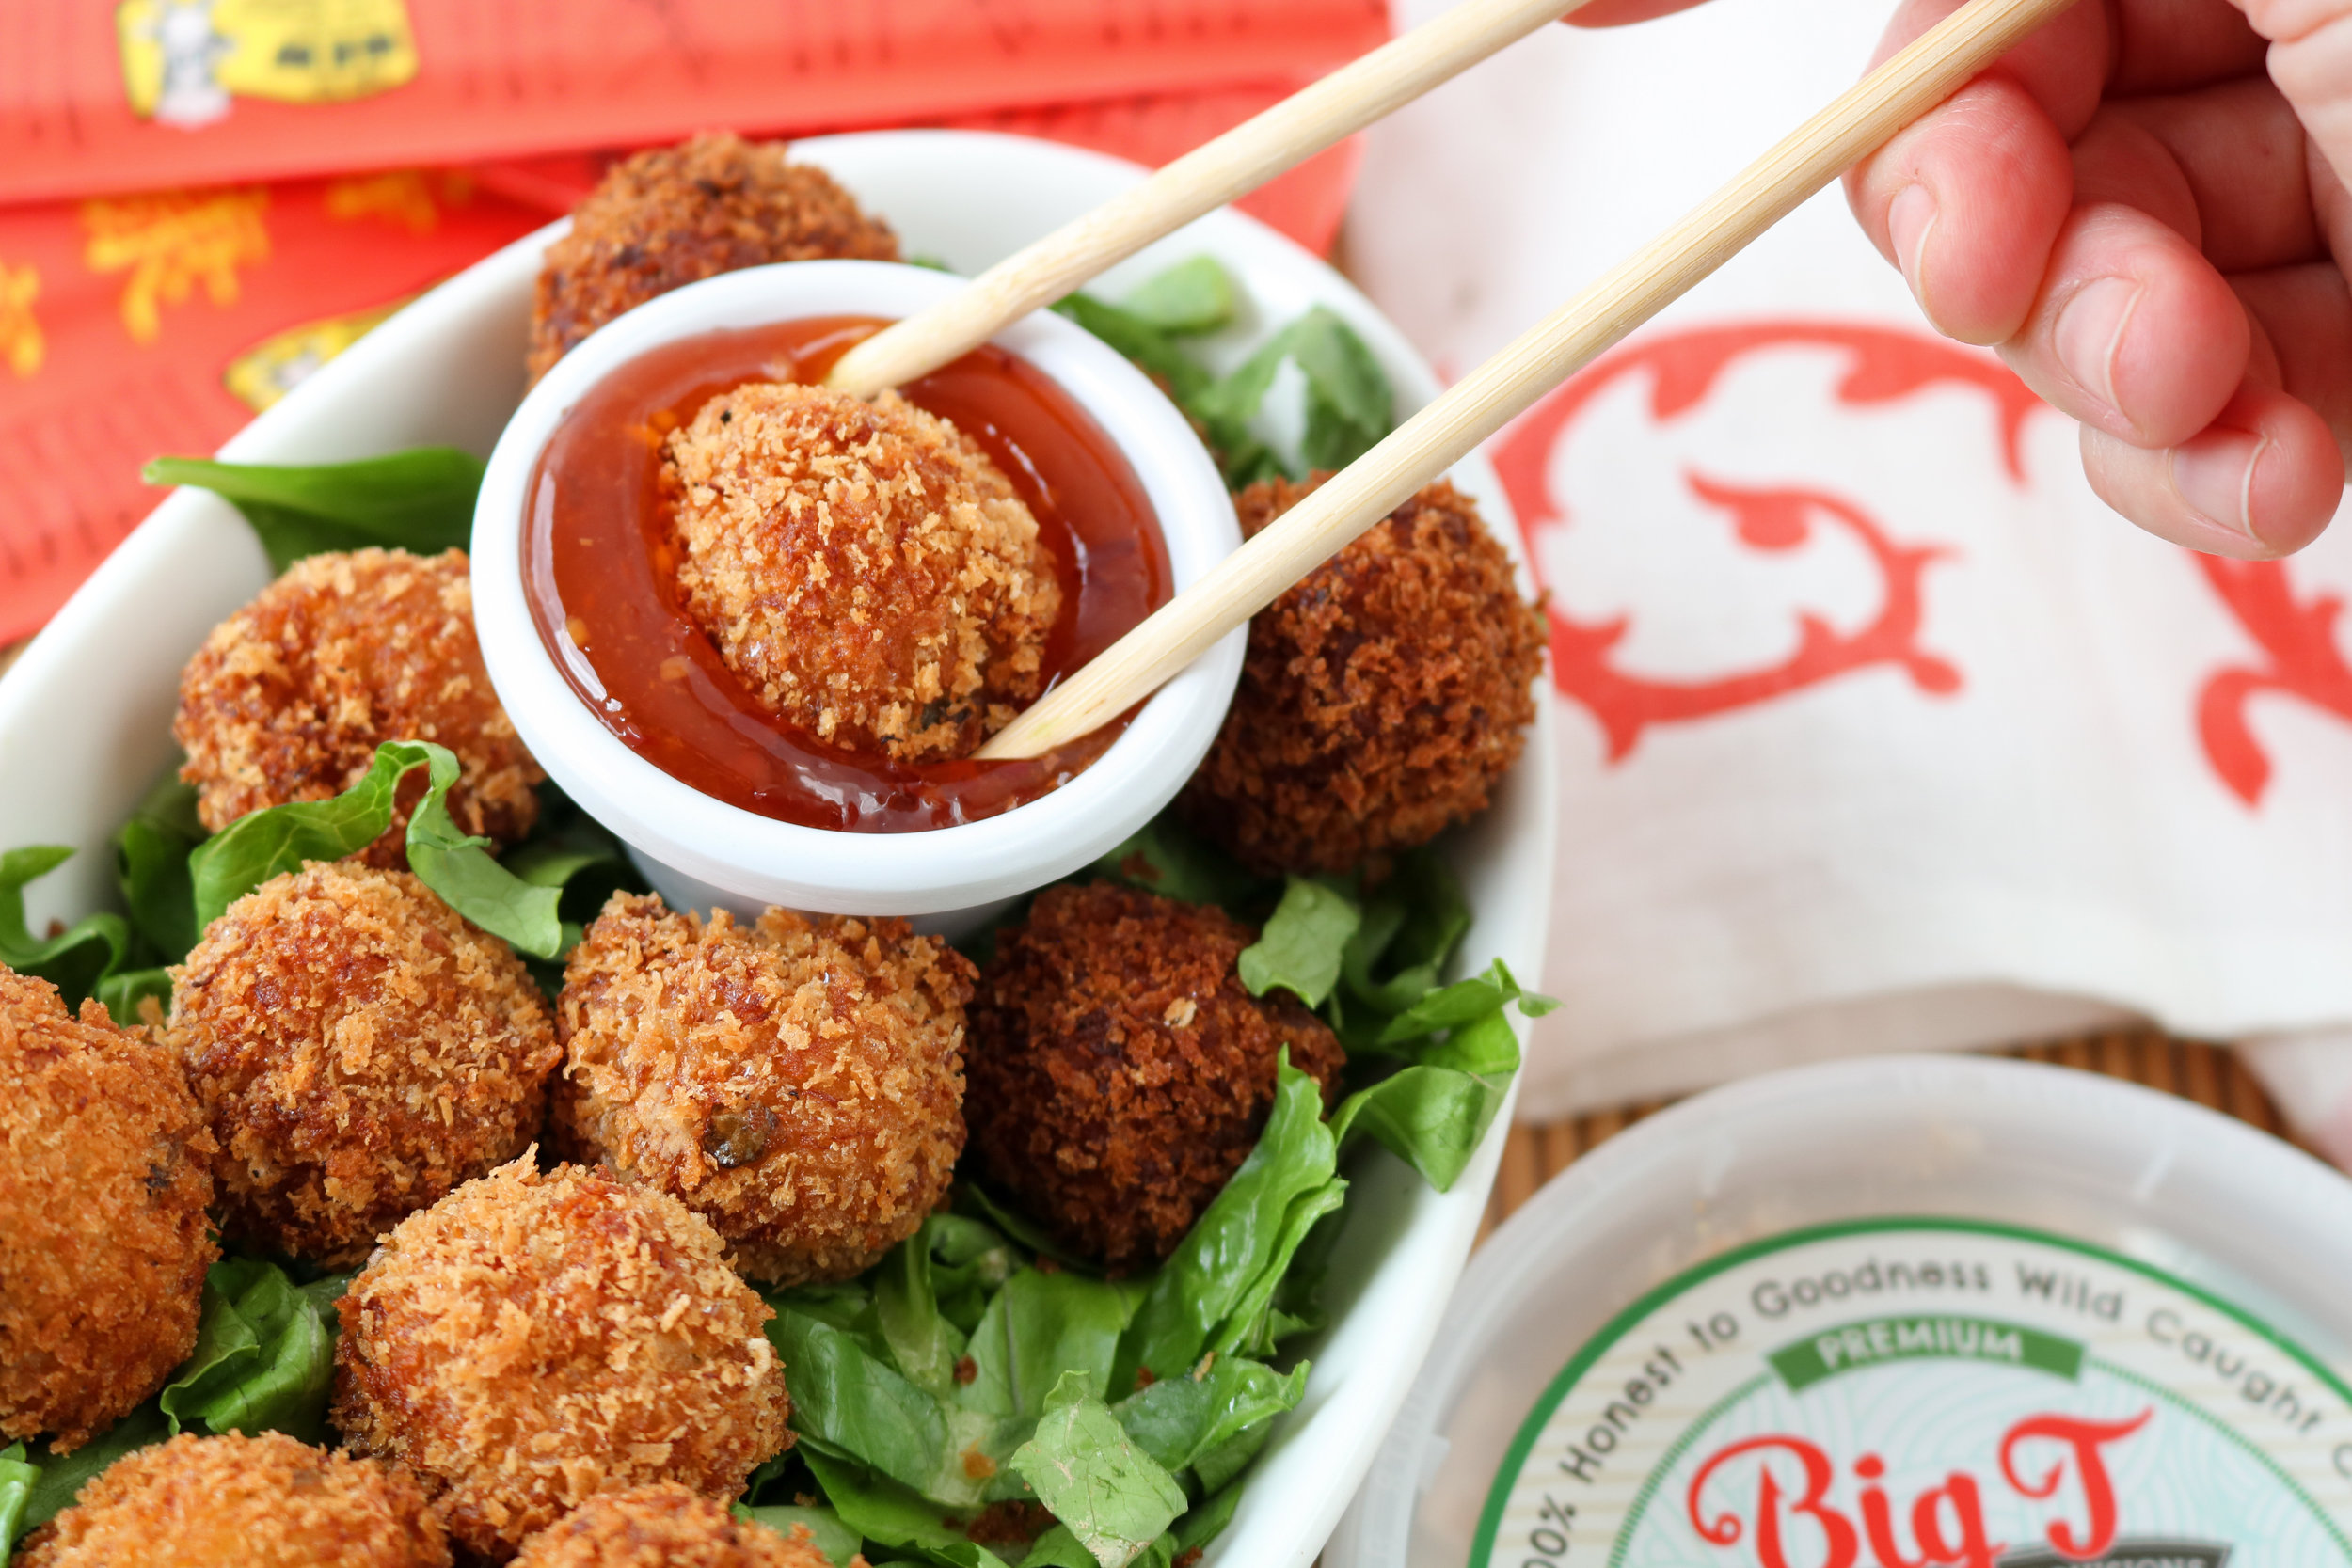 Spicy Asian Crab Balls With Sweet Chili Dipping Sauce Big T Coastal Provisions